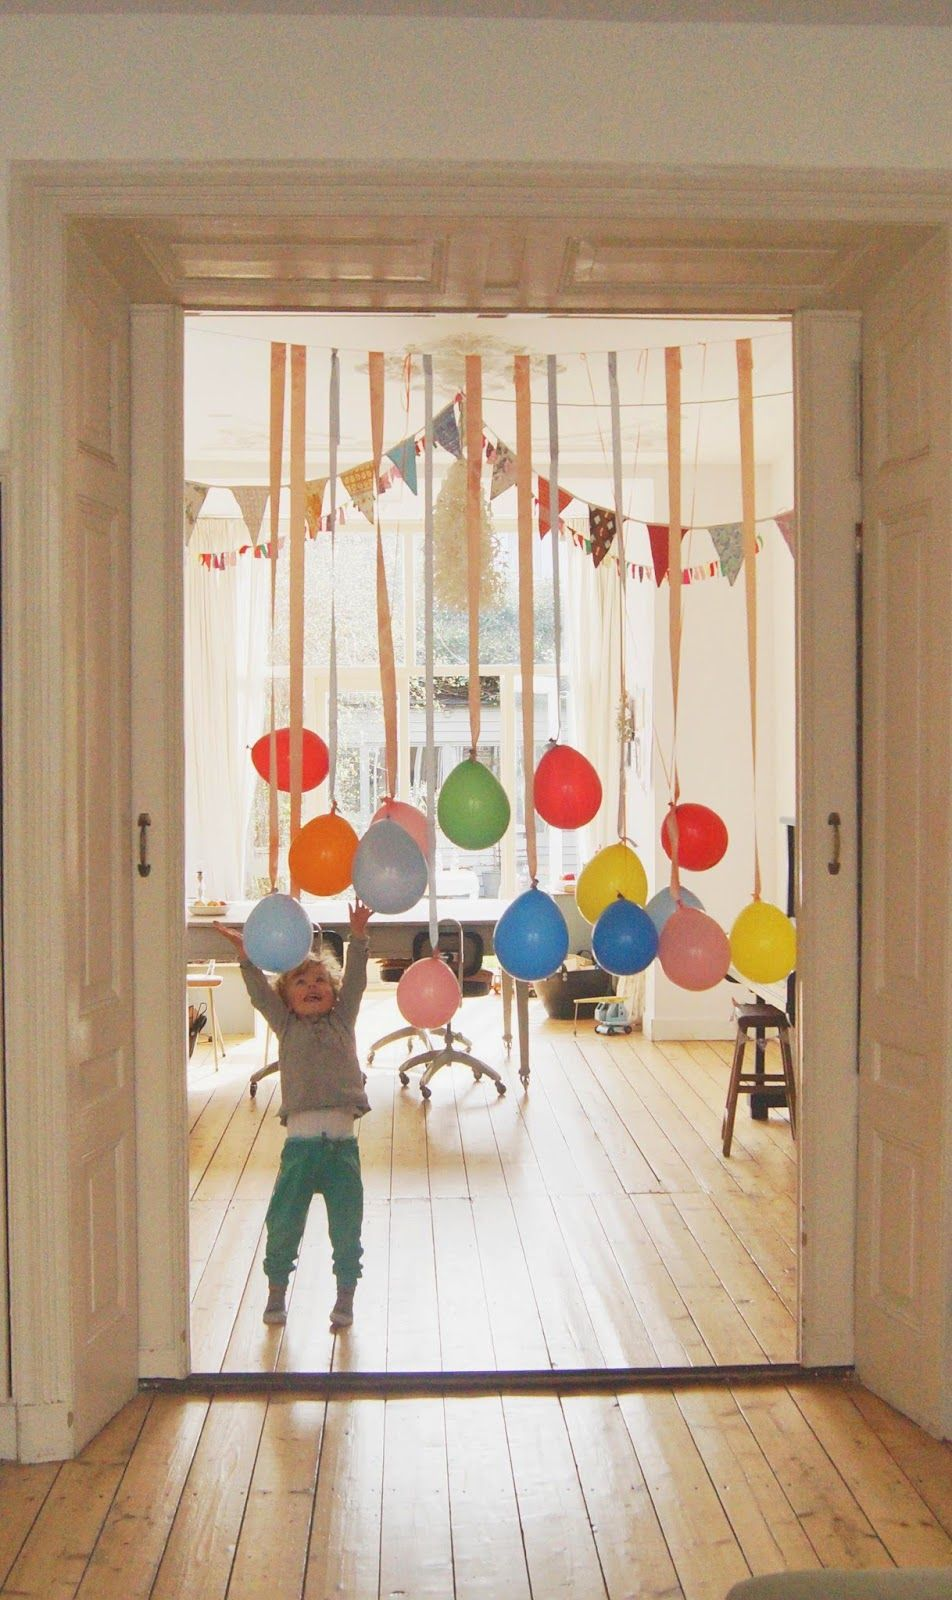 Diy Party Idea Kids Balloons Party Ideas Pinterest - Diy-decoracion-cumpleaos